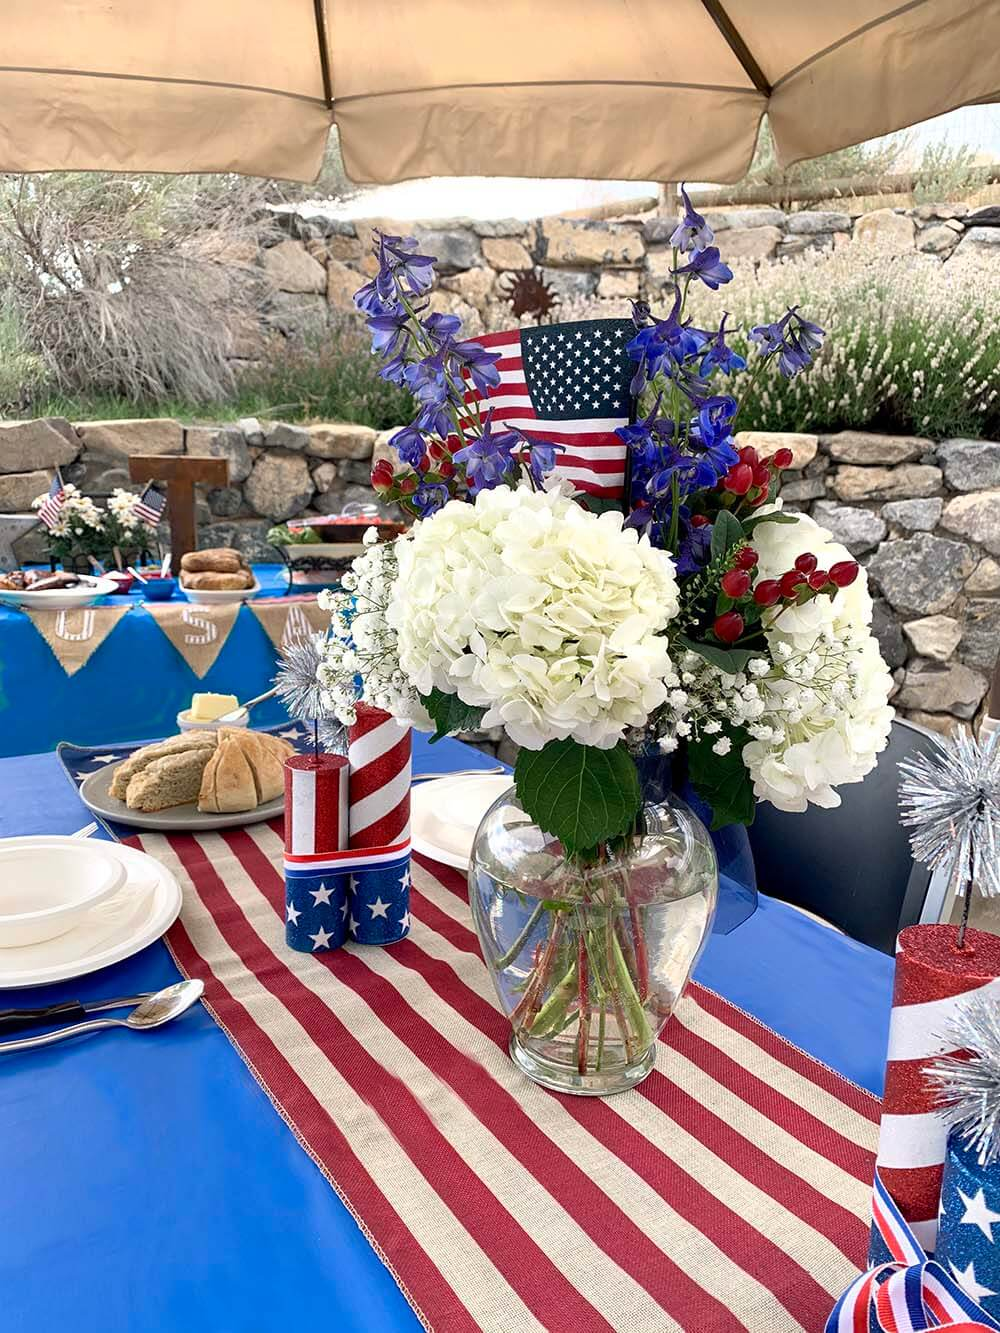 Patriotic tablescape with spread out seating for safe social distanced BBQ